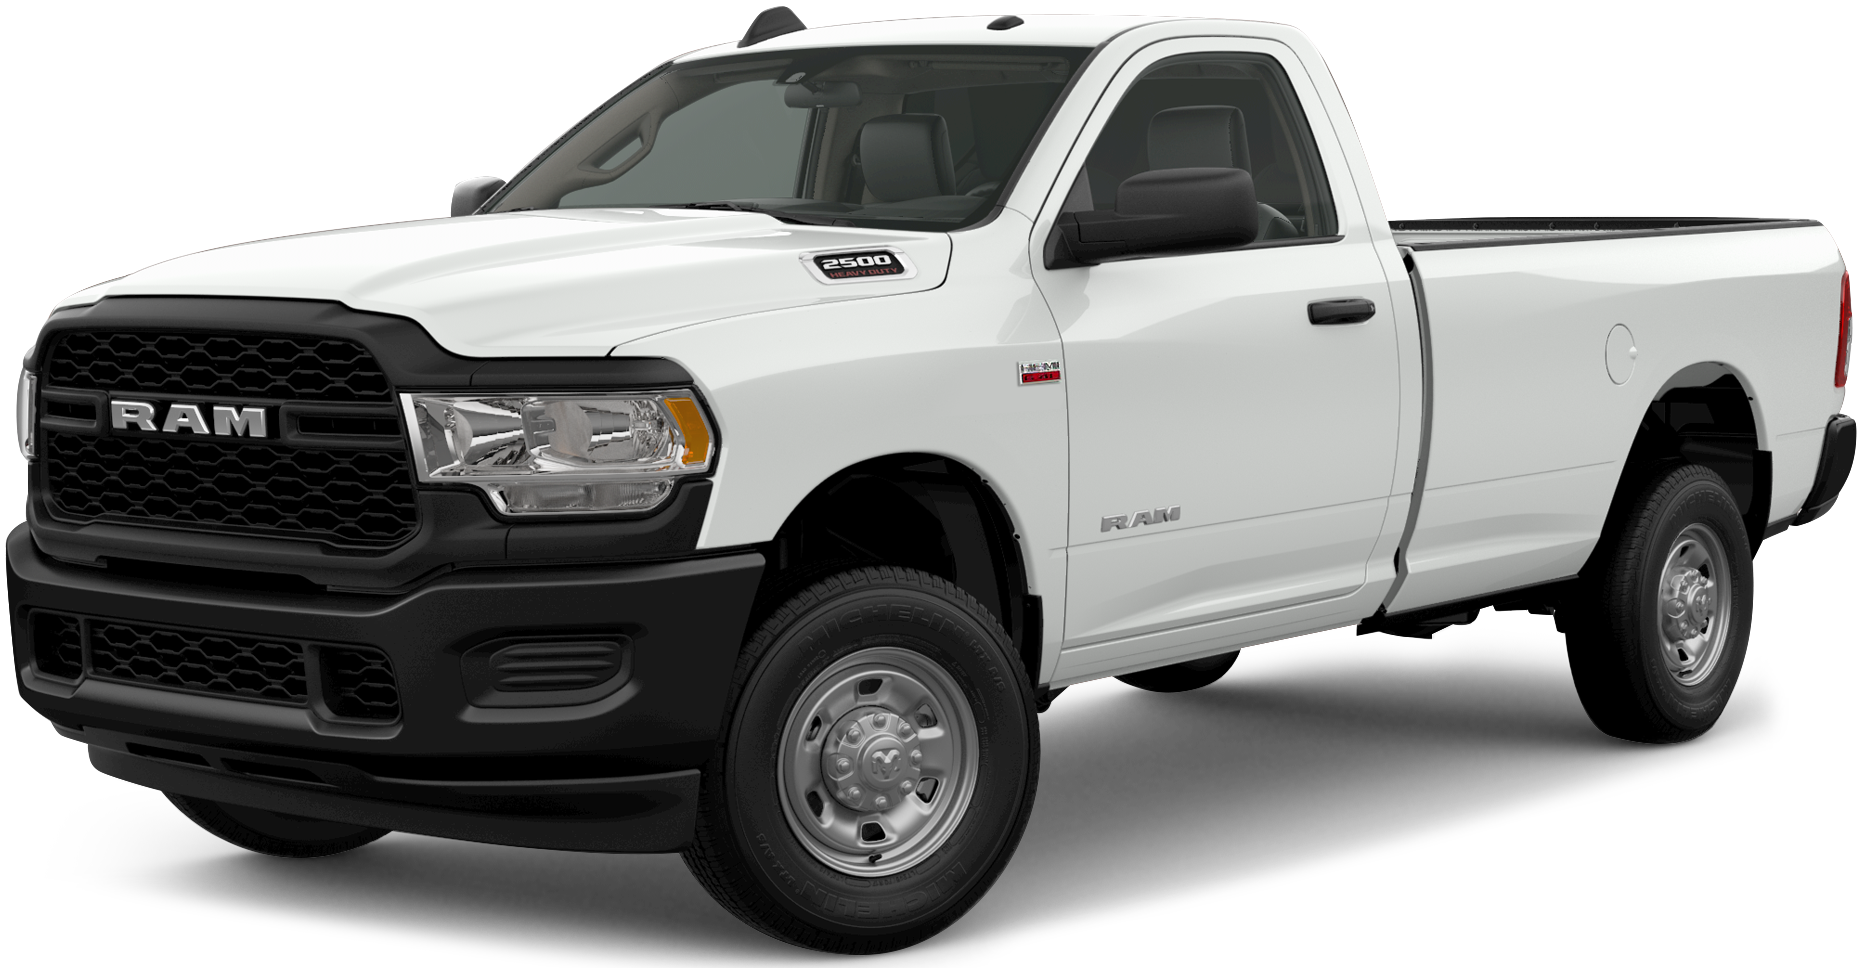 Review & Compare Ram 2500 at Larry H. Miller Chrysler Jeep Dodge Ram Surprise